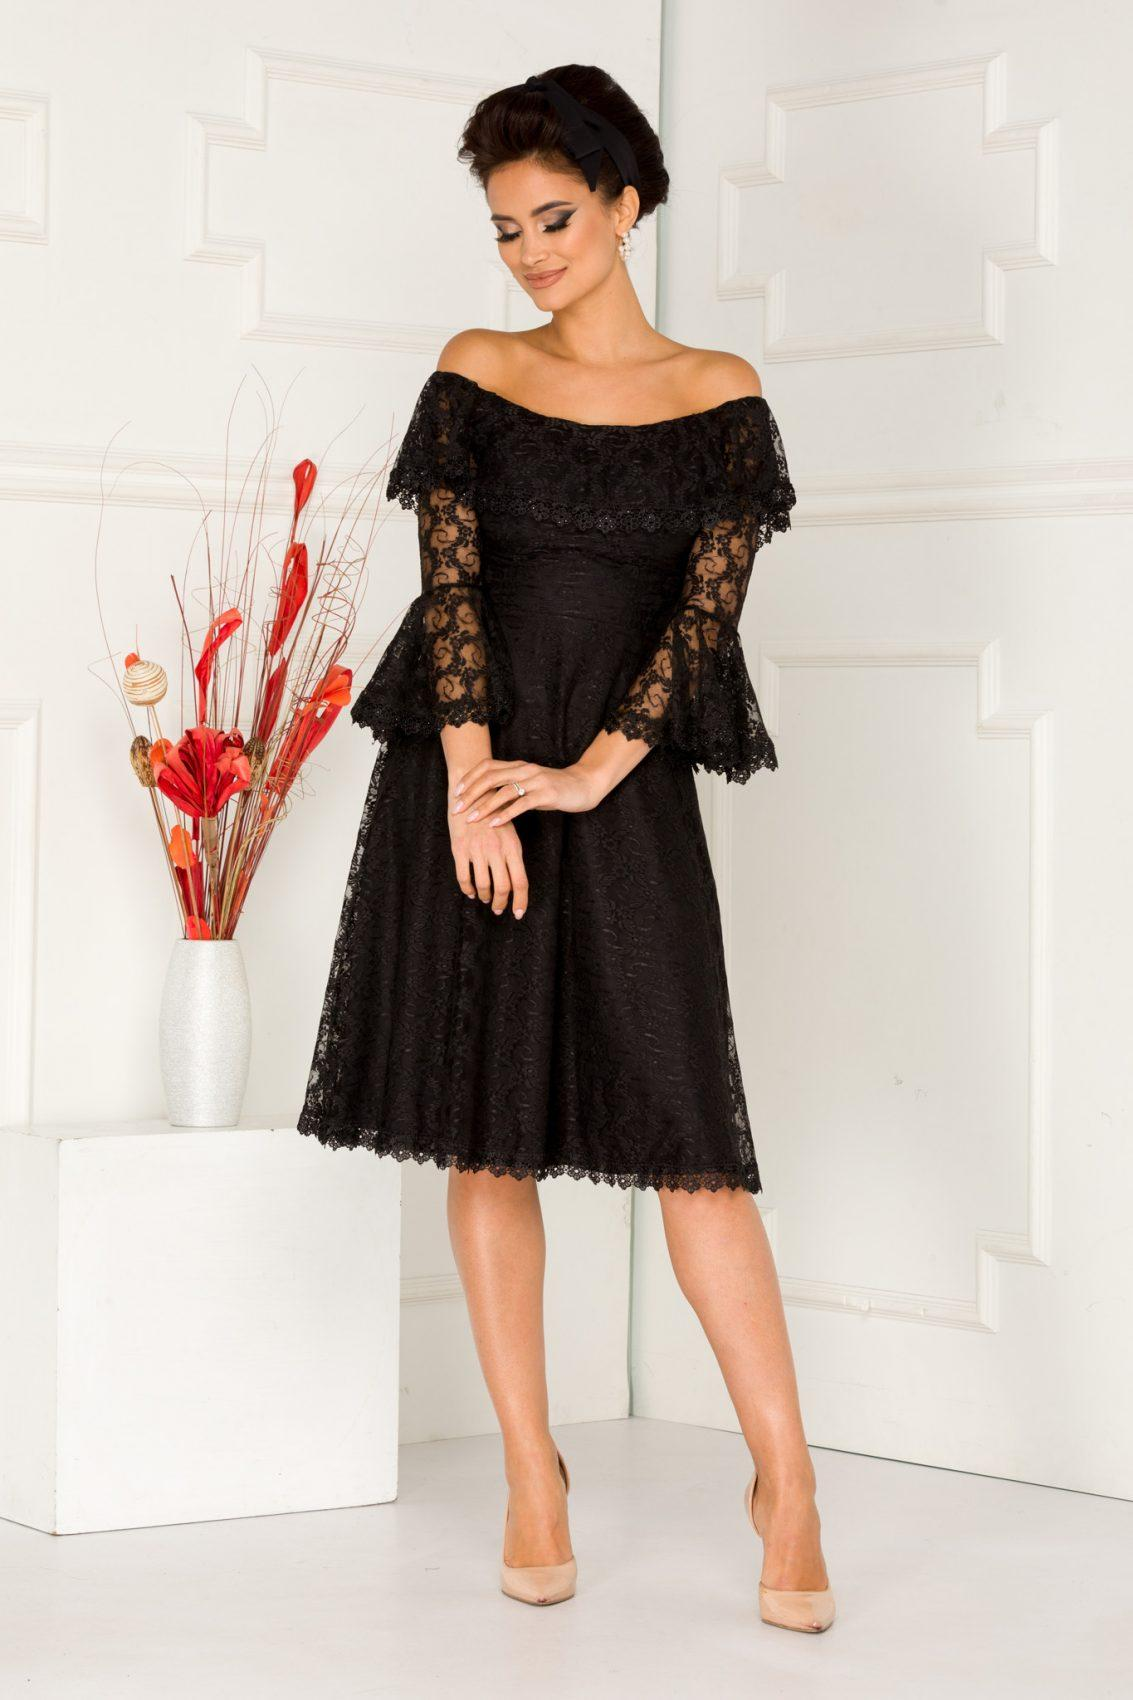 Medana Black Dress